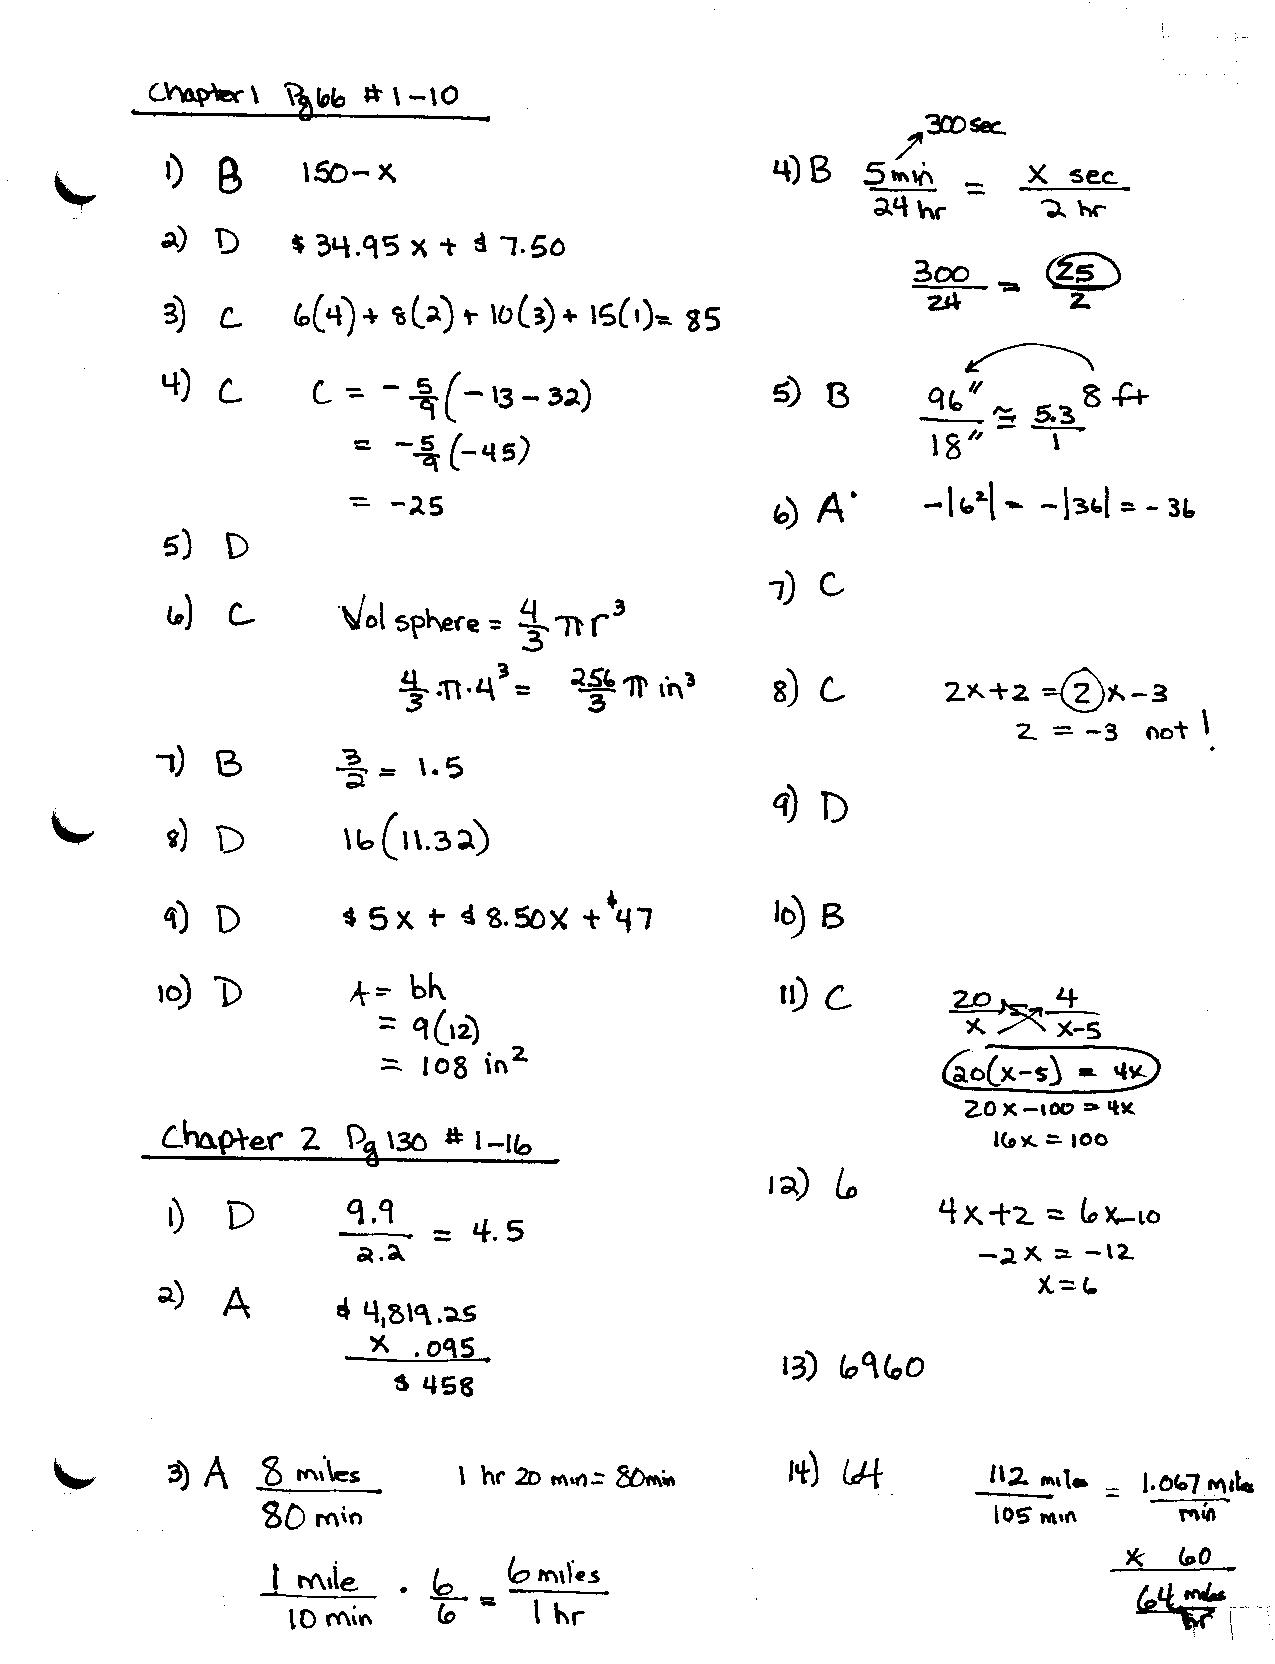 Holt Algebra 1 Worksheet Answer Key